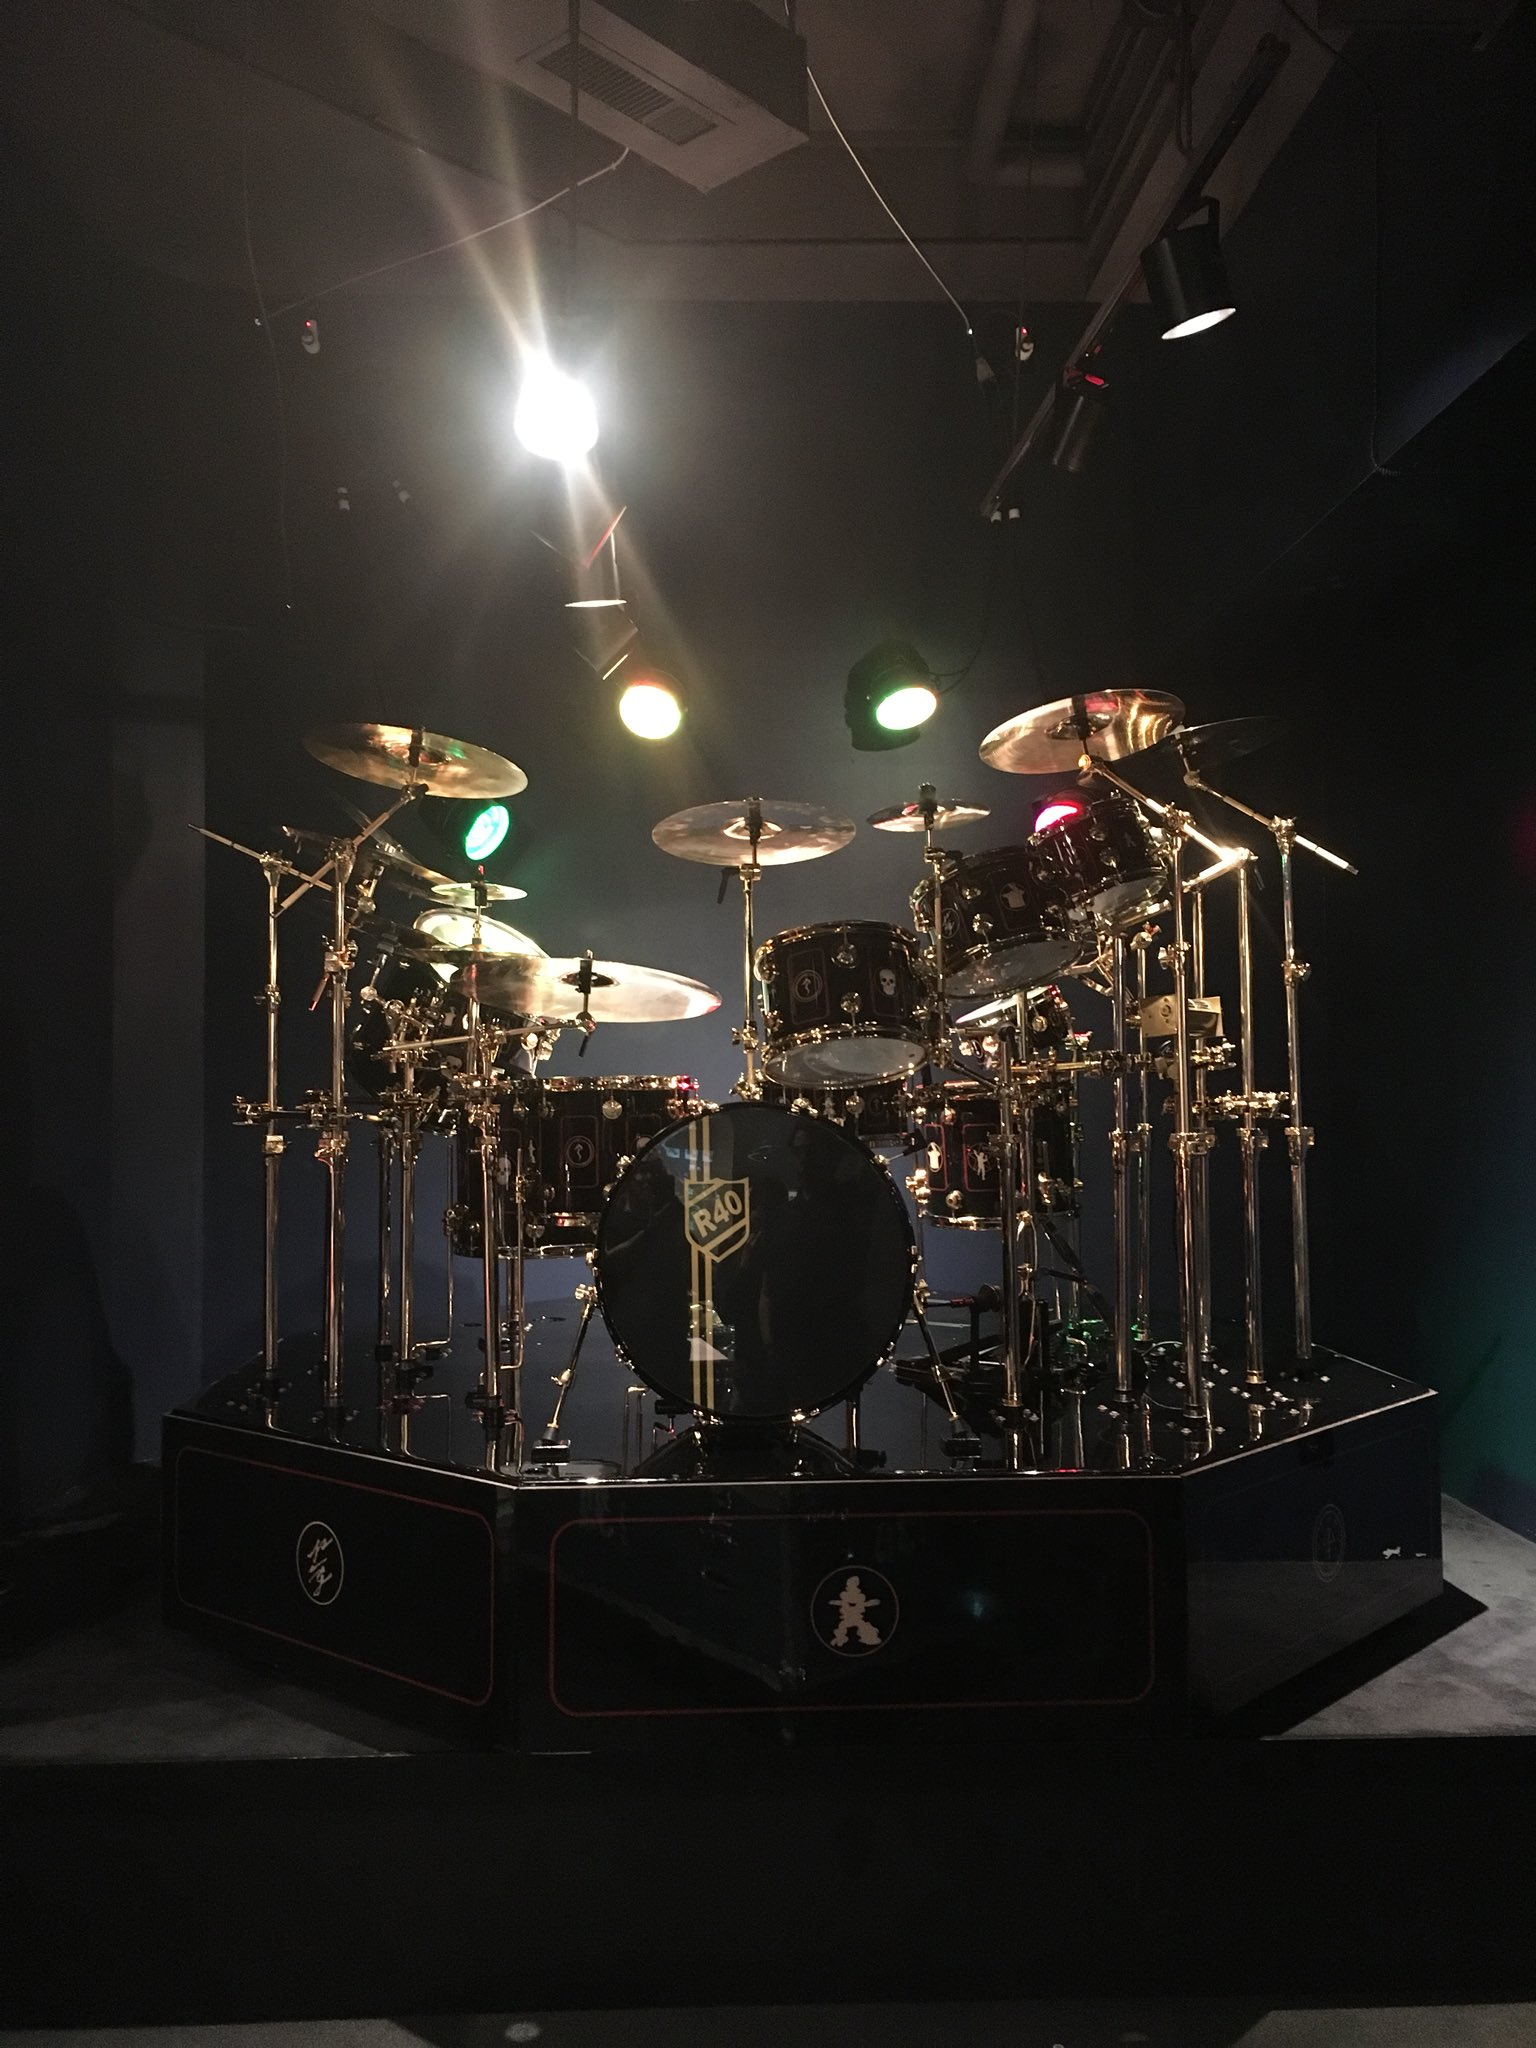 neil pearts r40 drum kit on display at the rhythm